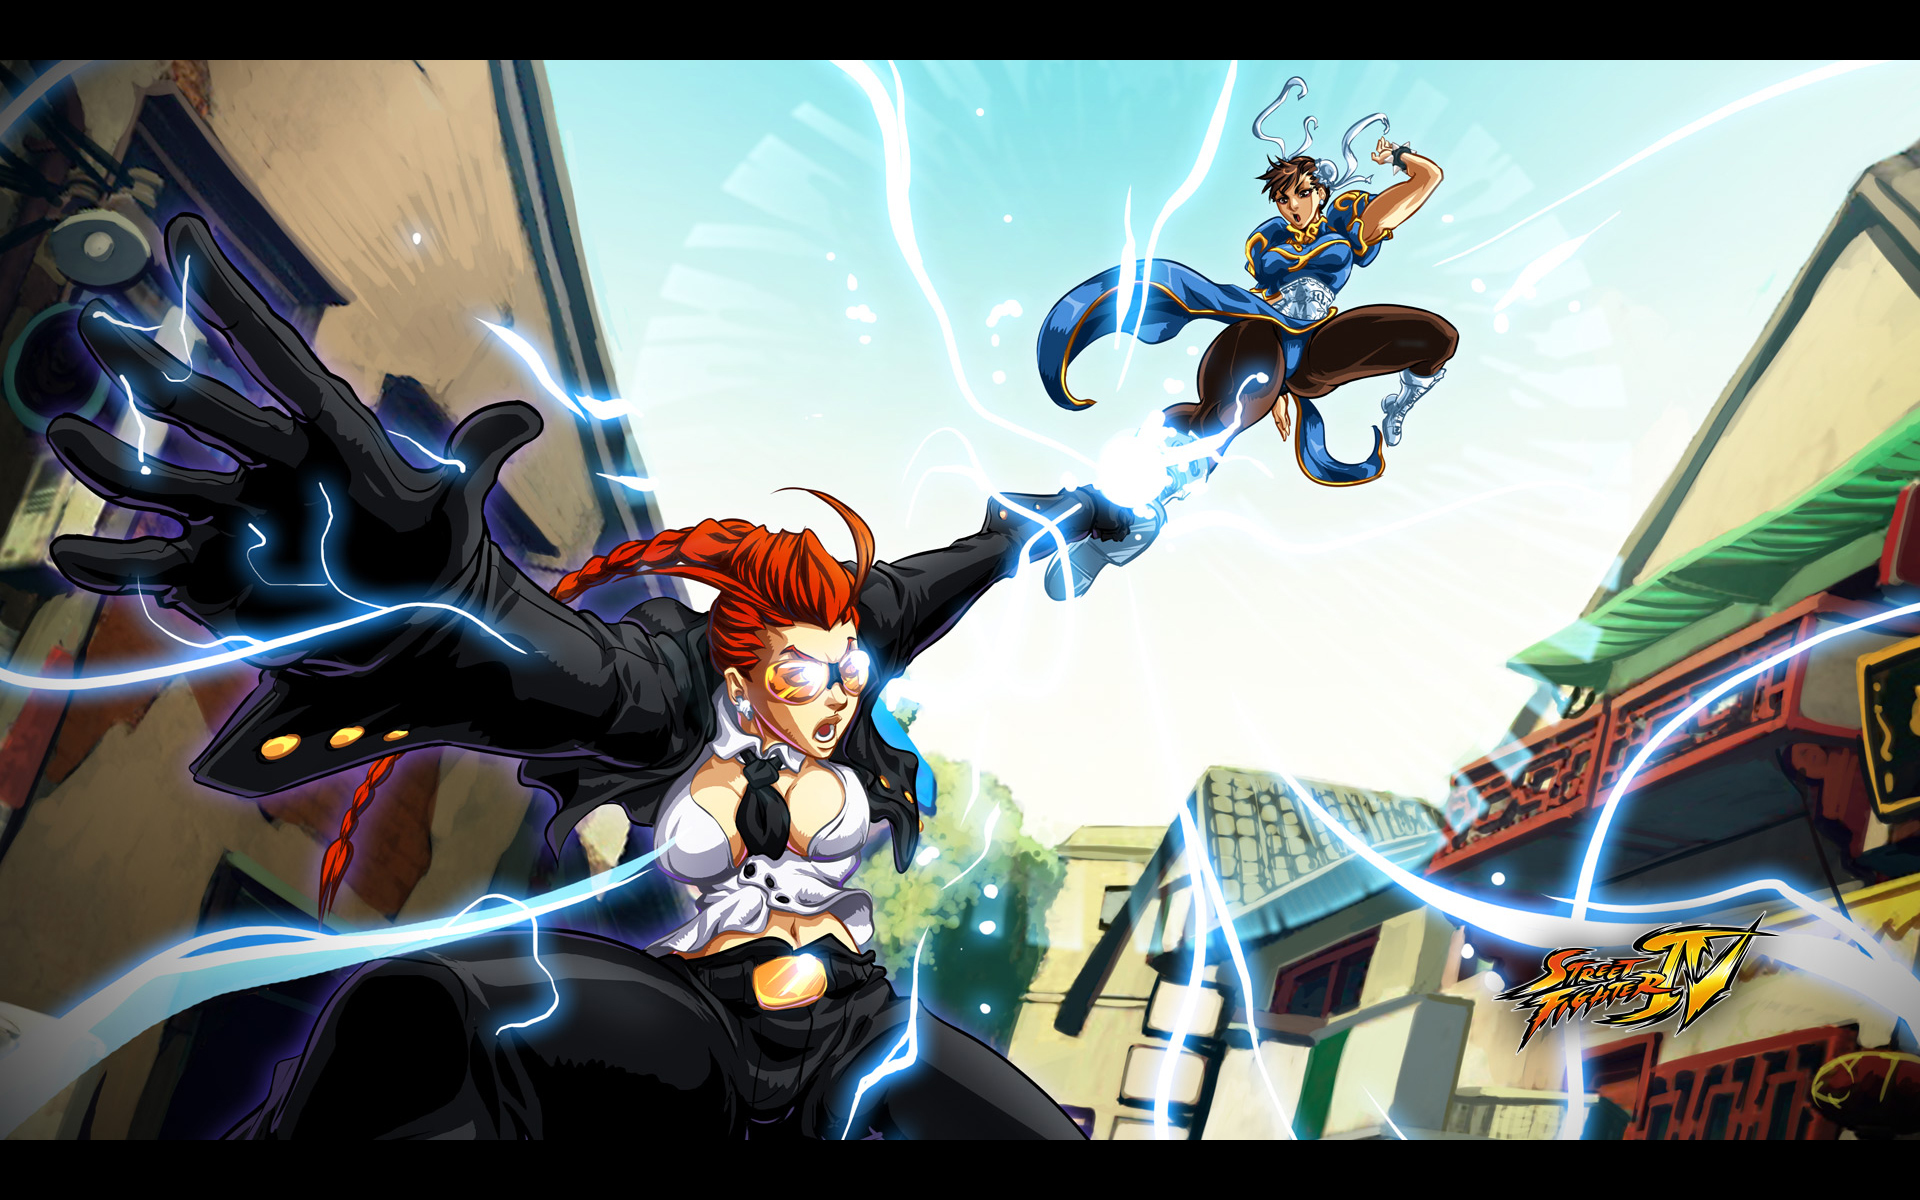 Street Fighter Wallpaper on Street Fighter Hd Wallpaper   Anime   Manga   465784